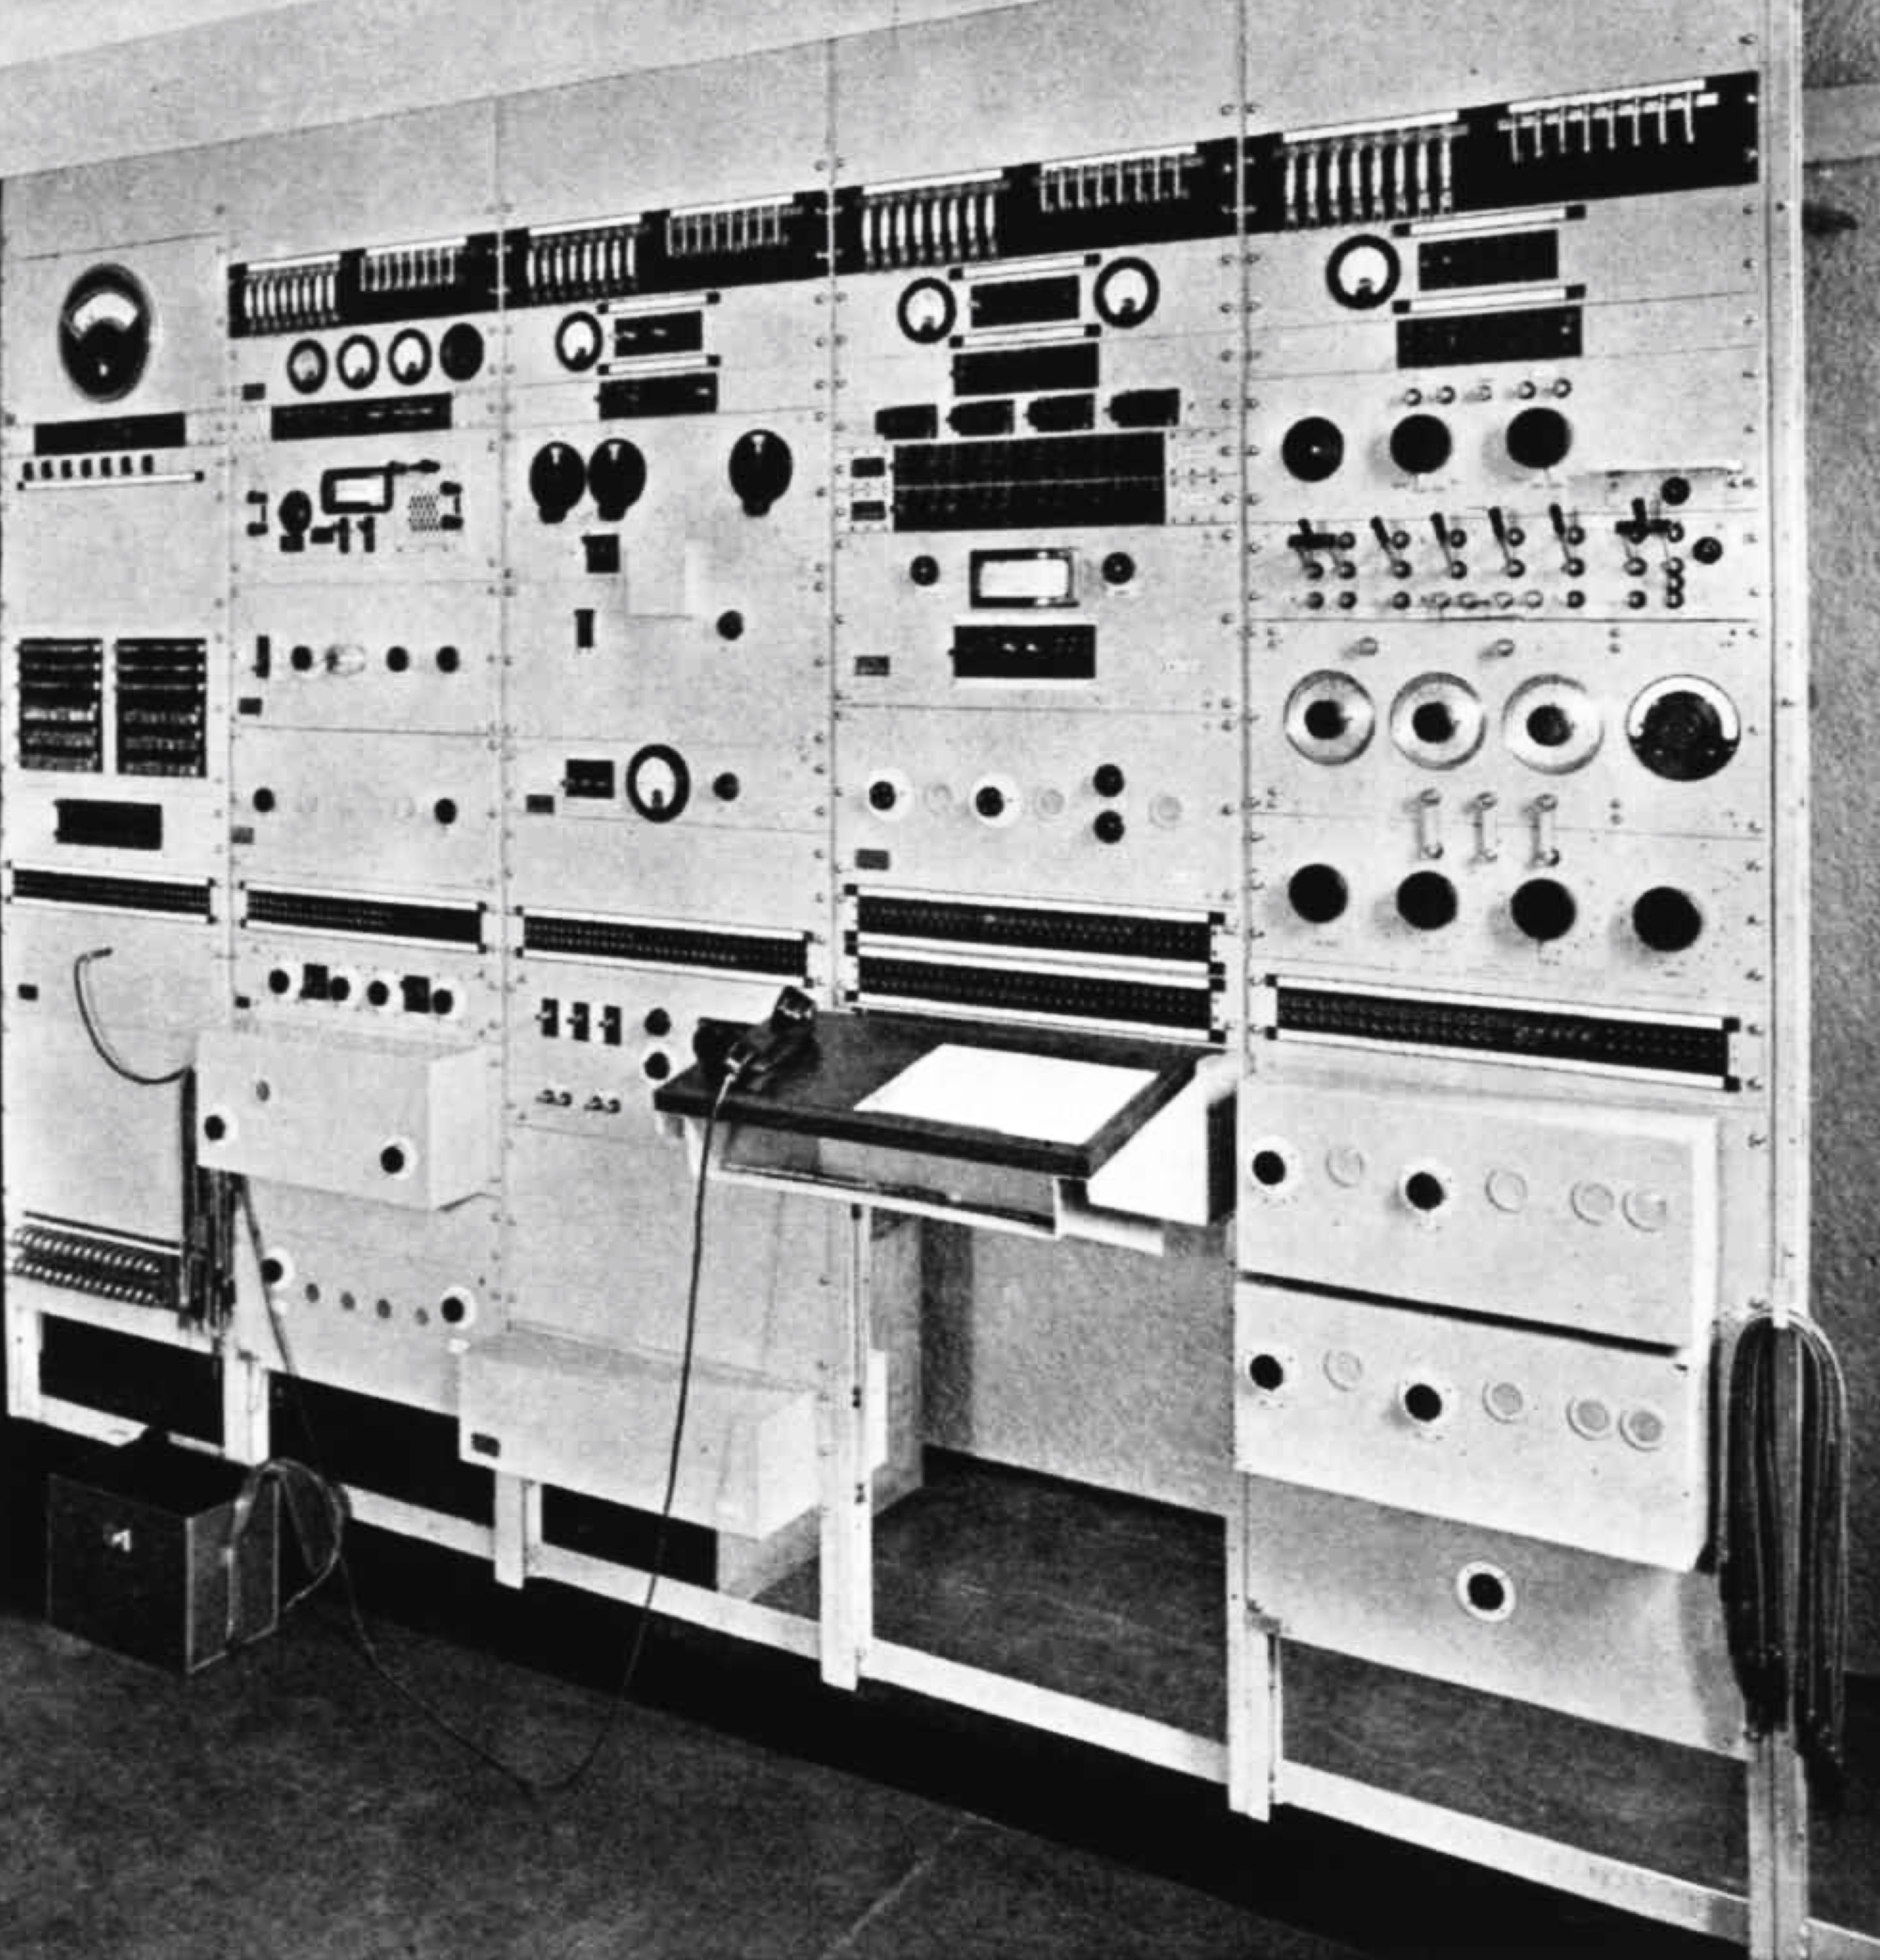 5 vertical panels with dials, switches and knobs